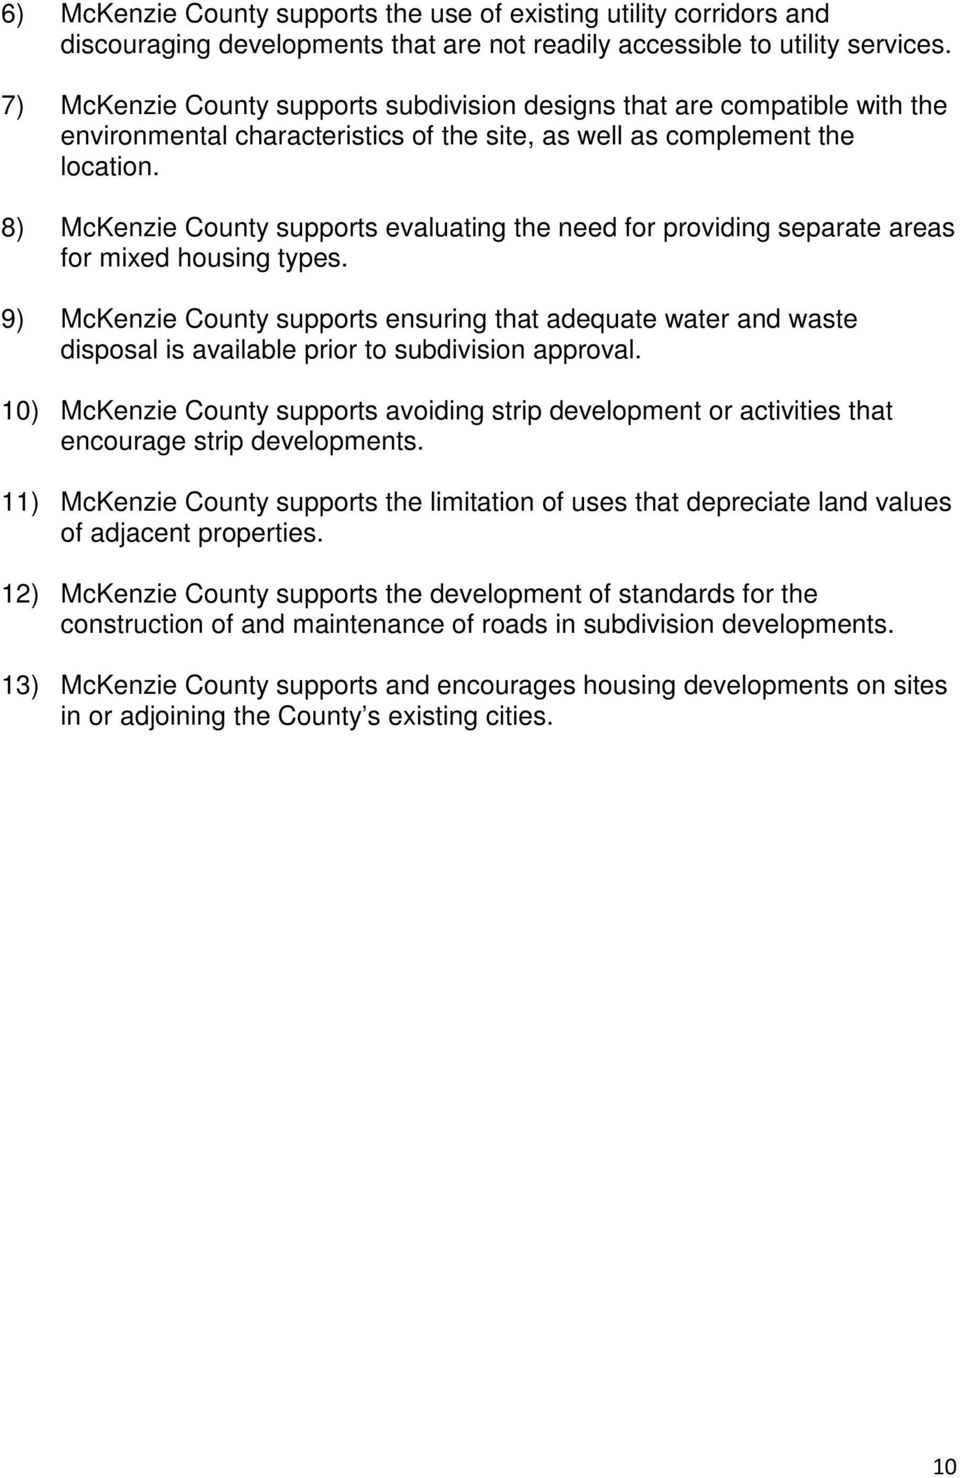 8) McKenzie County supports evaluating the need for providing separate areas for mixed housing types.